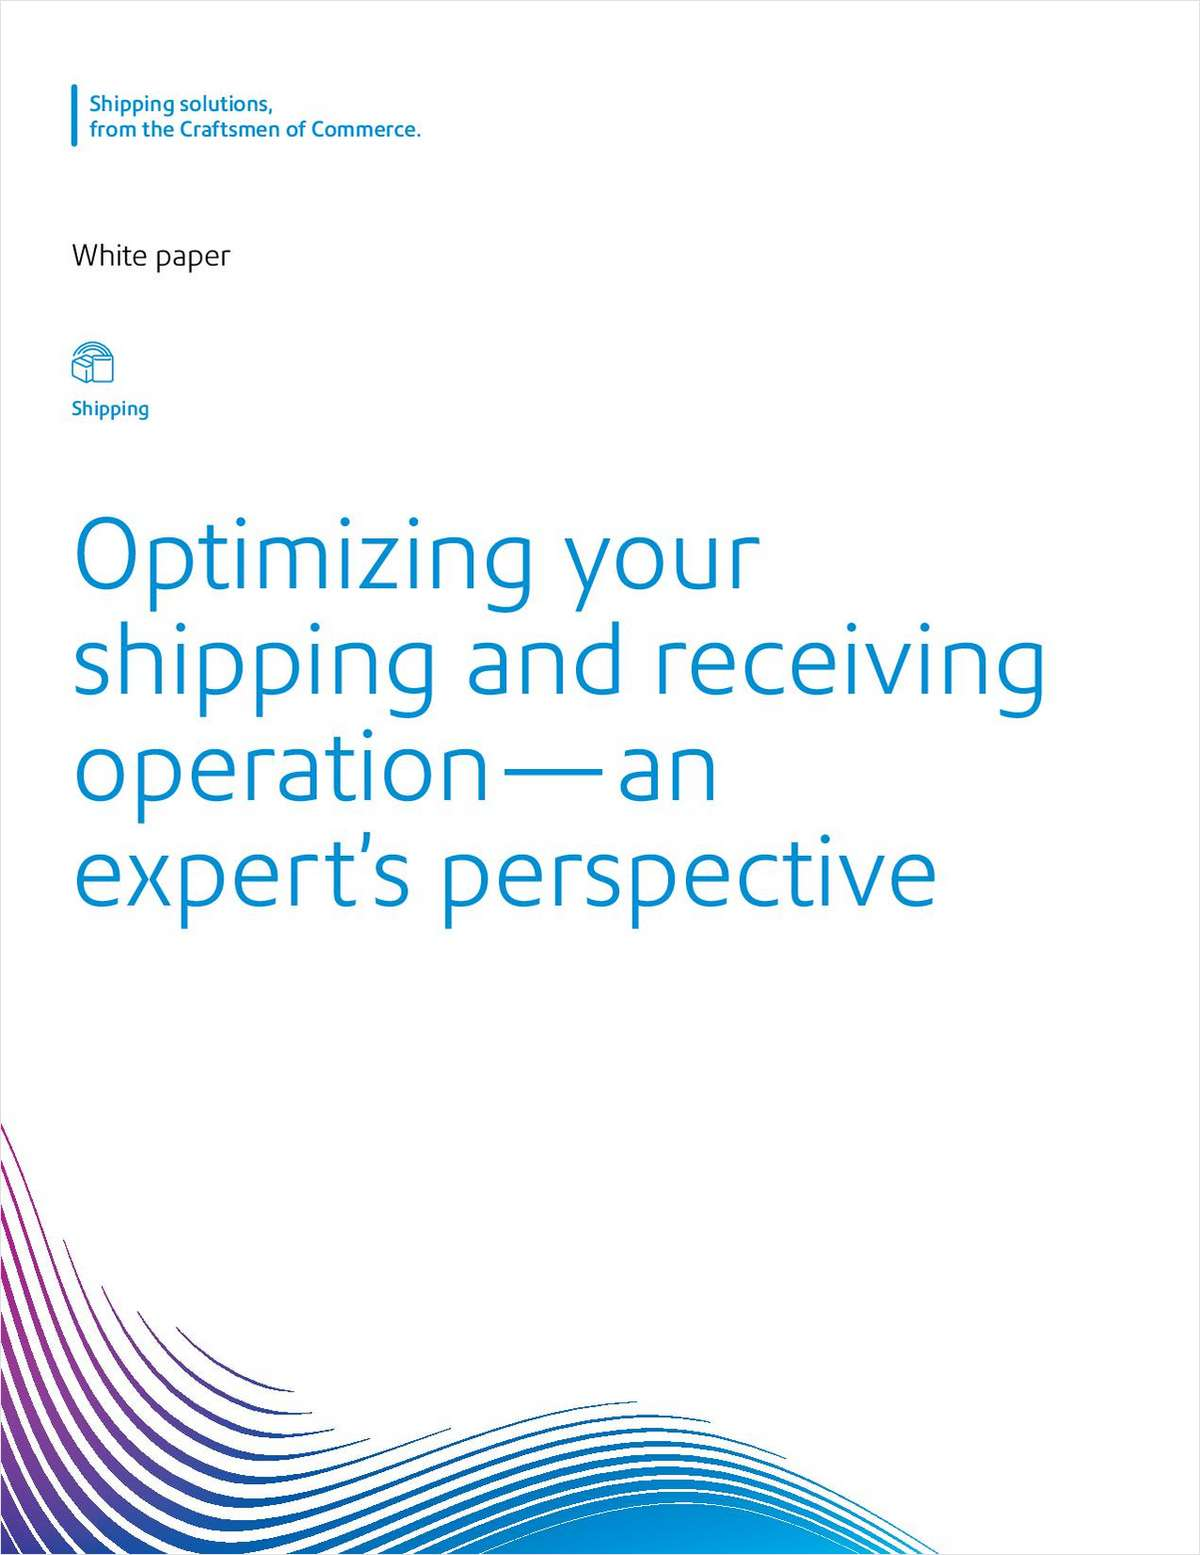 Optimizing your shipping and receiving operation -- an expert's perspective